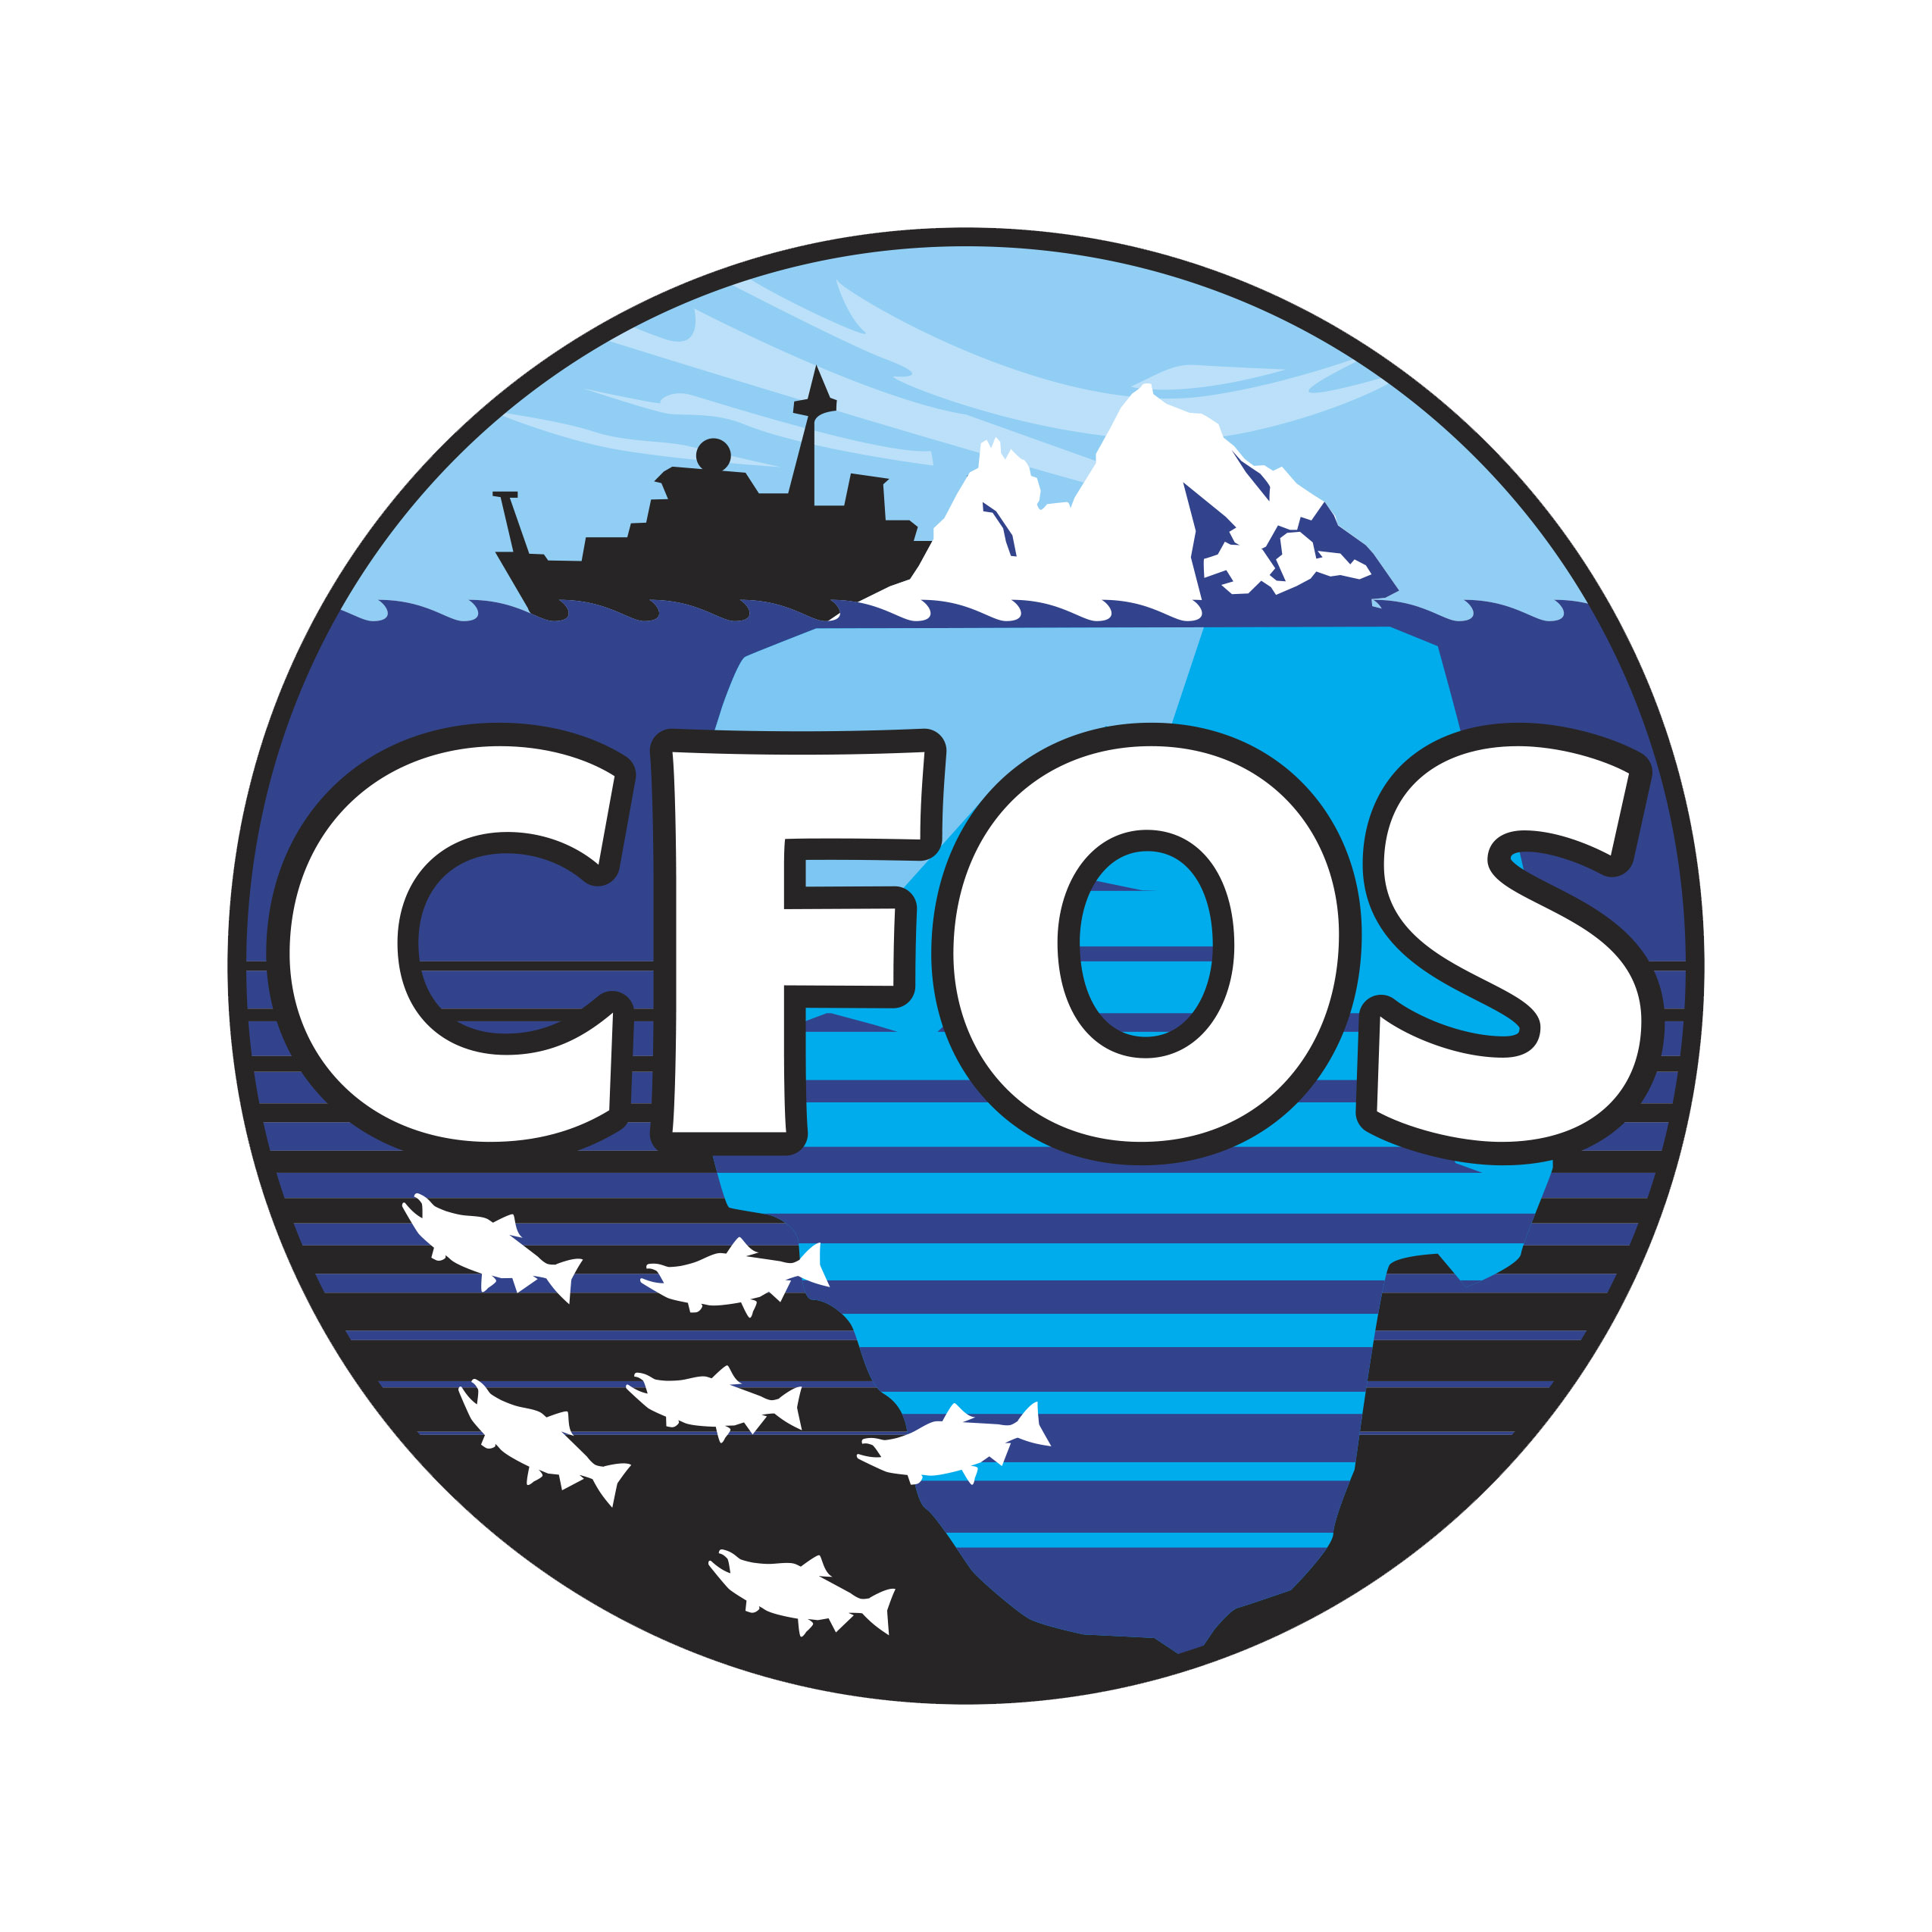 CFOS graphic - Color logo